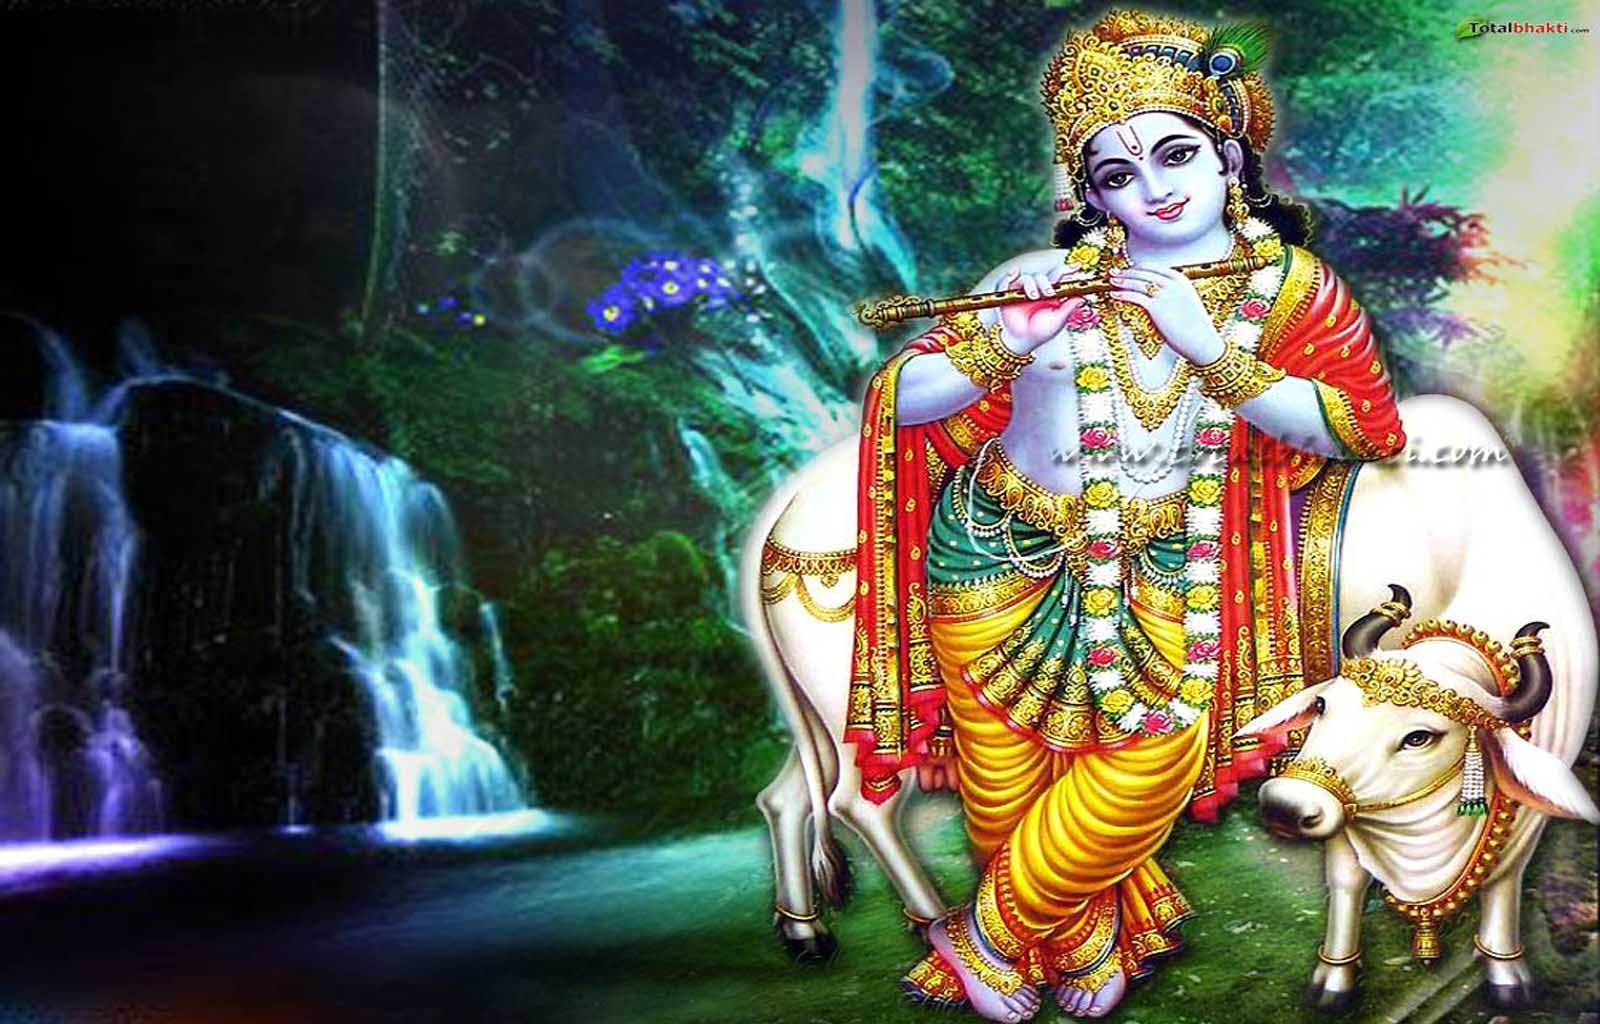 Wallpaper download krishna bhagwan - Download Sri Krishna Images For Janmashtami 2014 Happy Birthday 2015